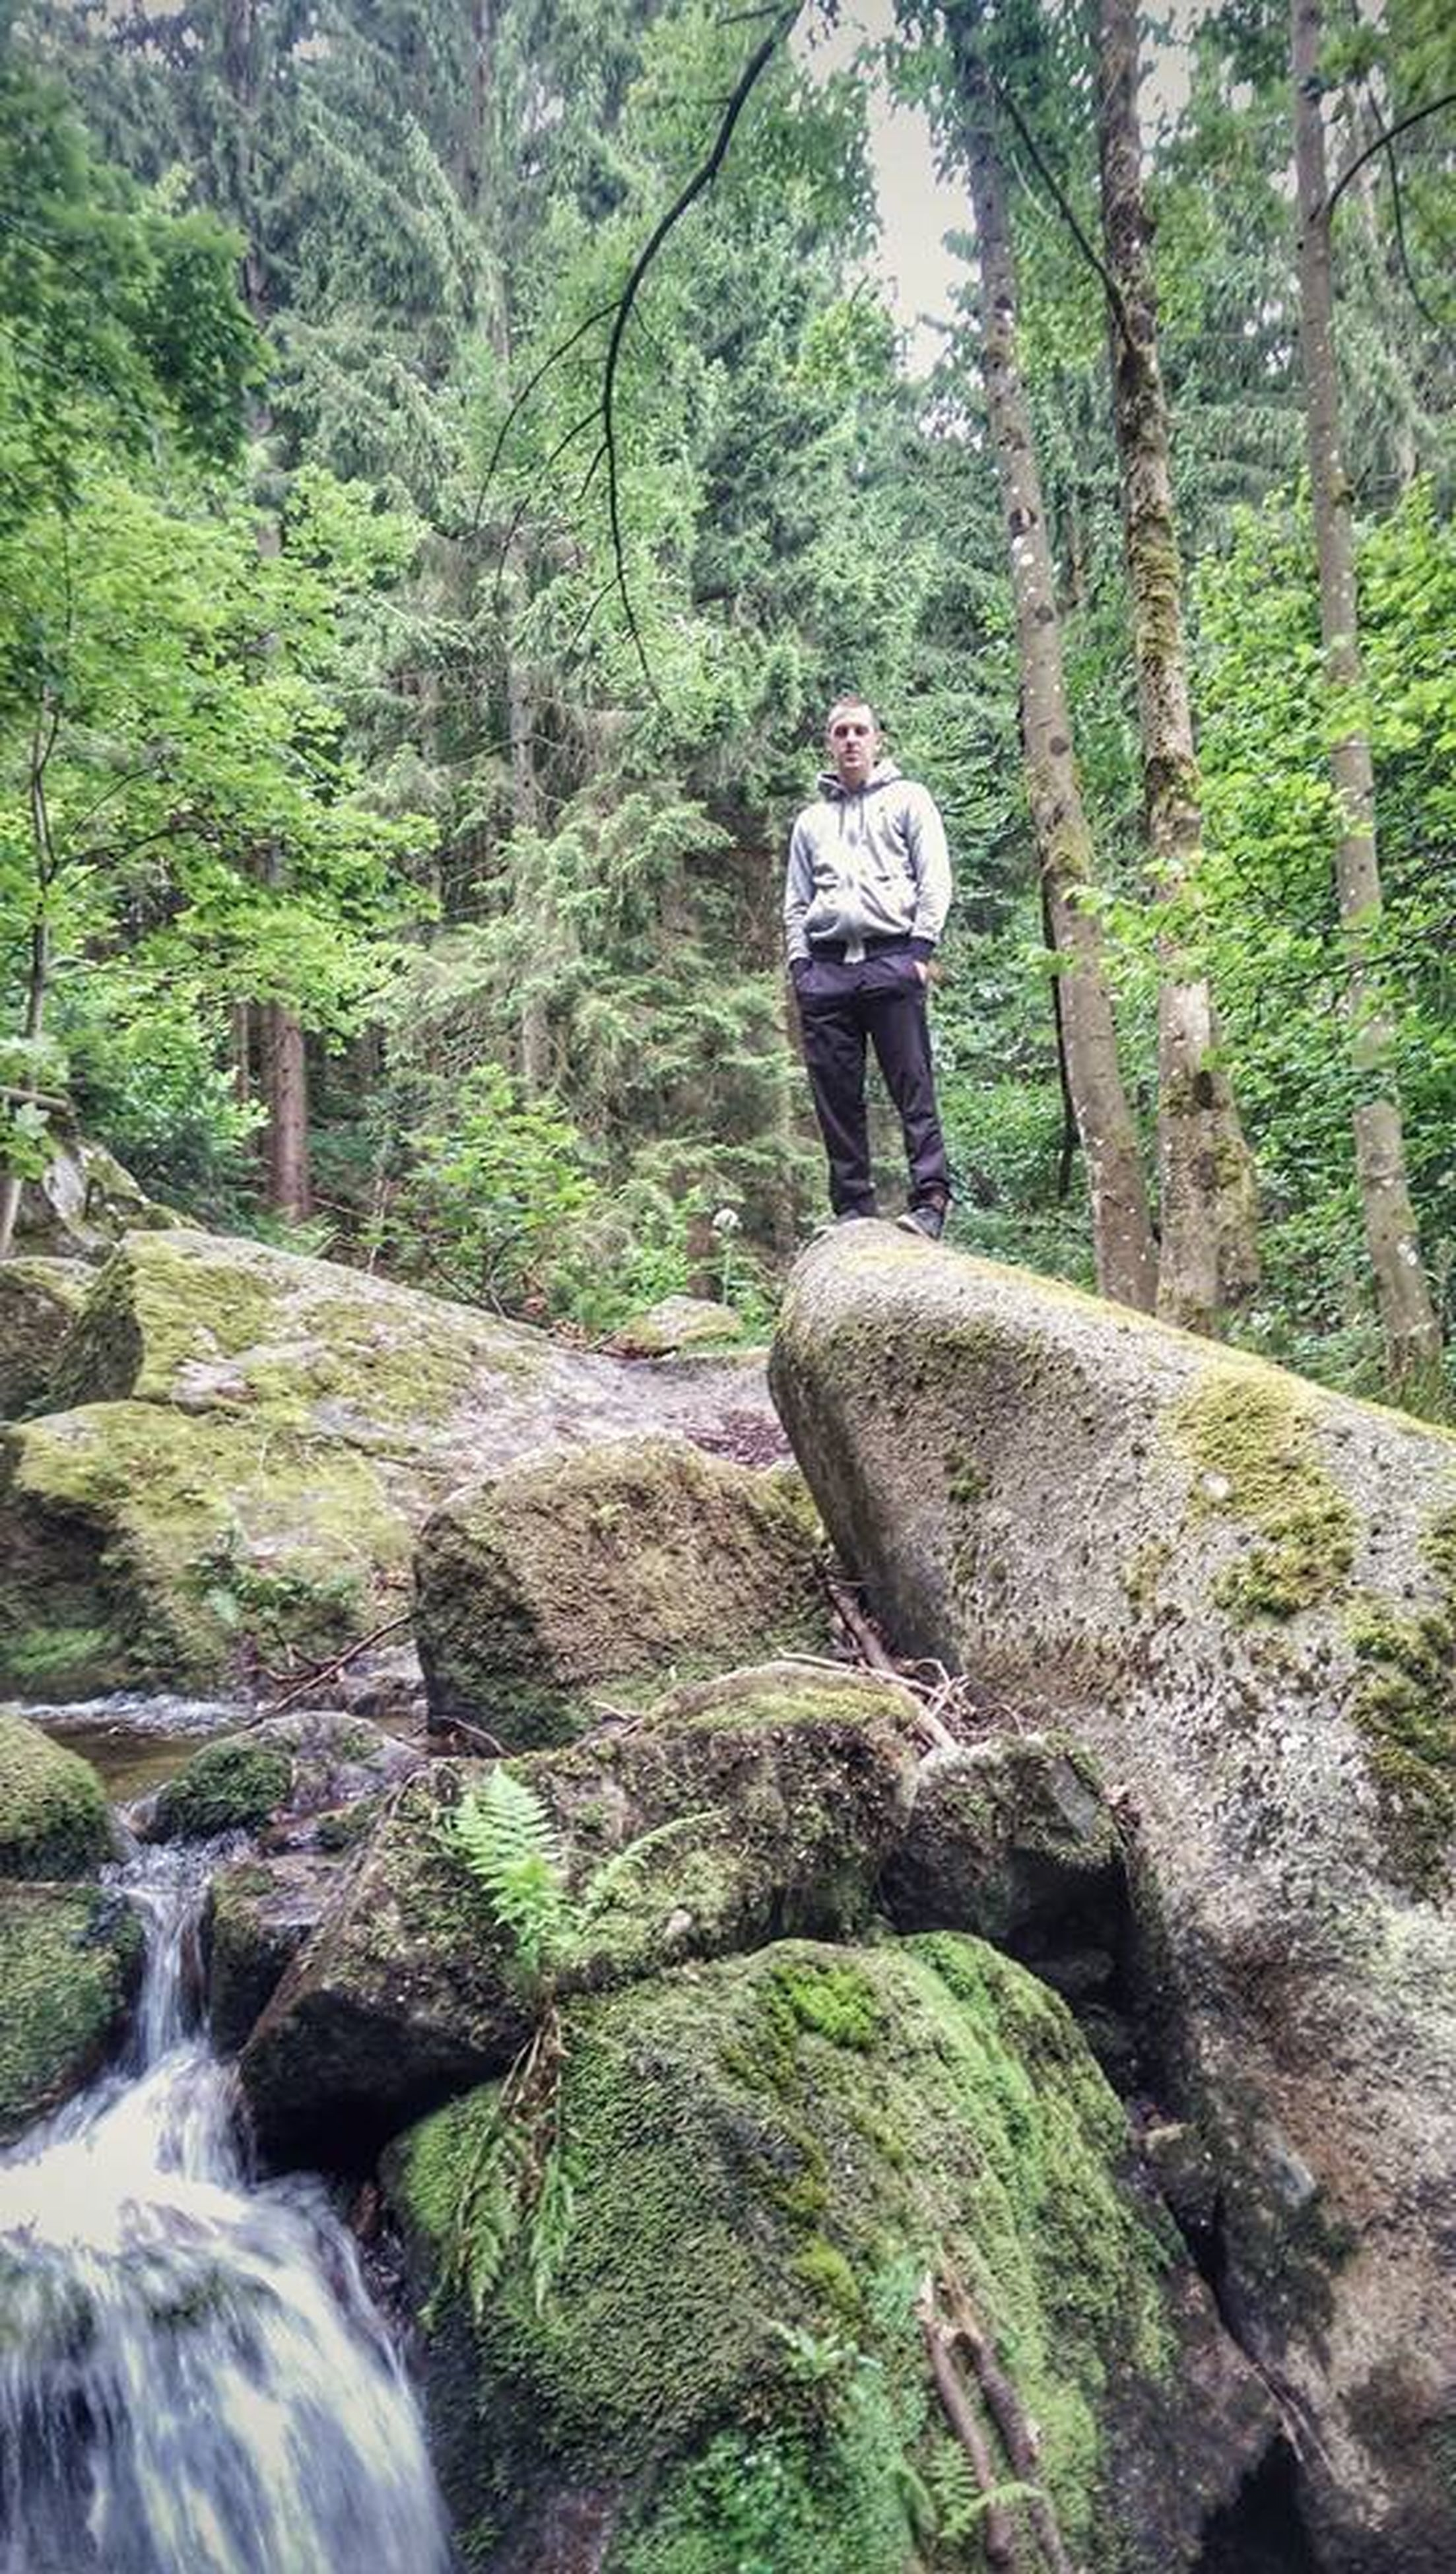 tree, forest, rock - object, leisure activity, lifestyles, full length, nature, casual clothing, water, waterfall, growth, beauty in nature, green color, motion, standing, rock, flowing water, tranquility